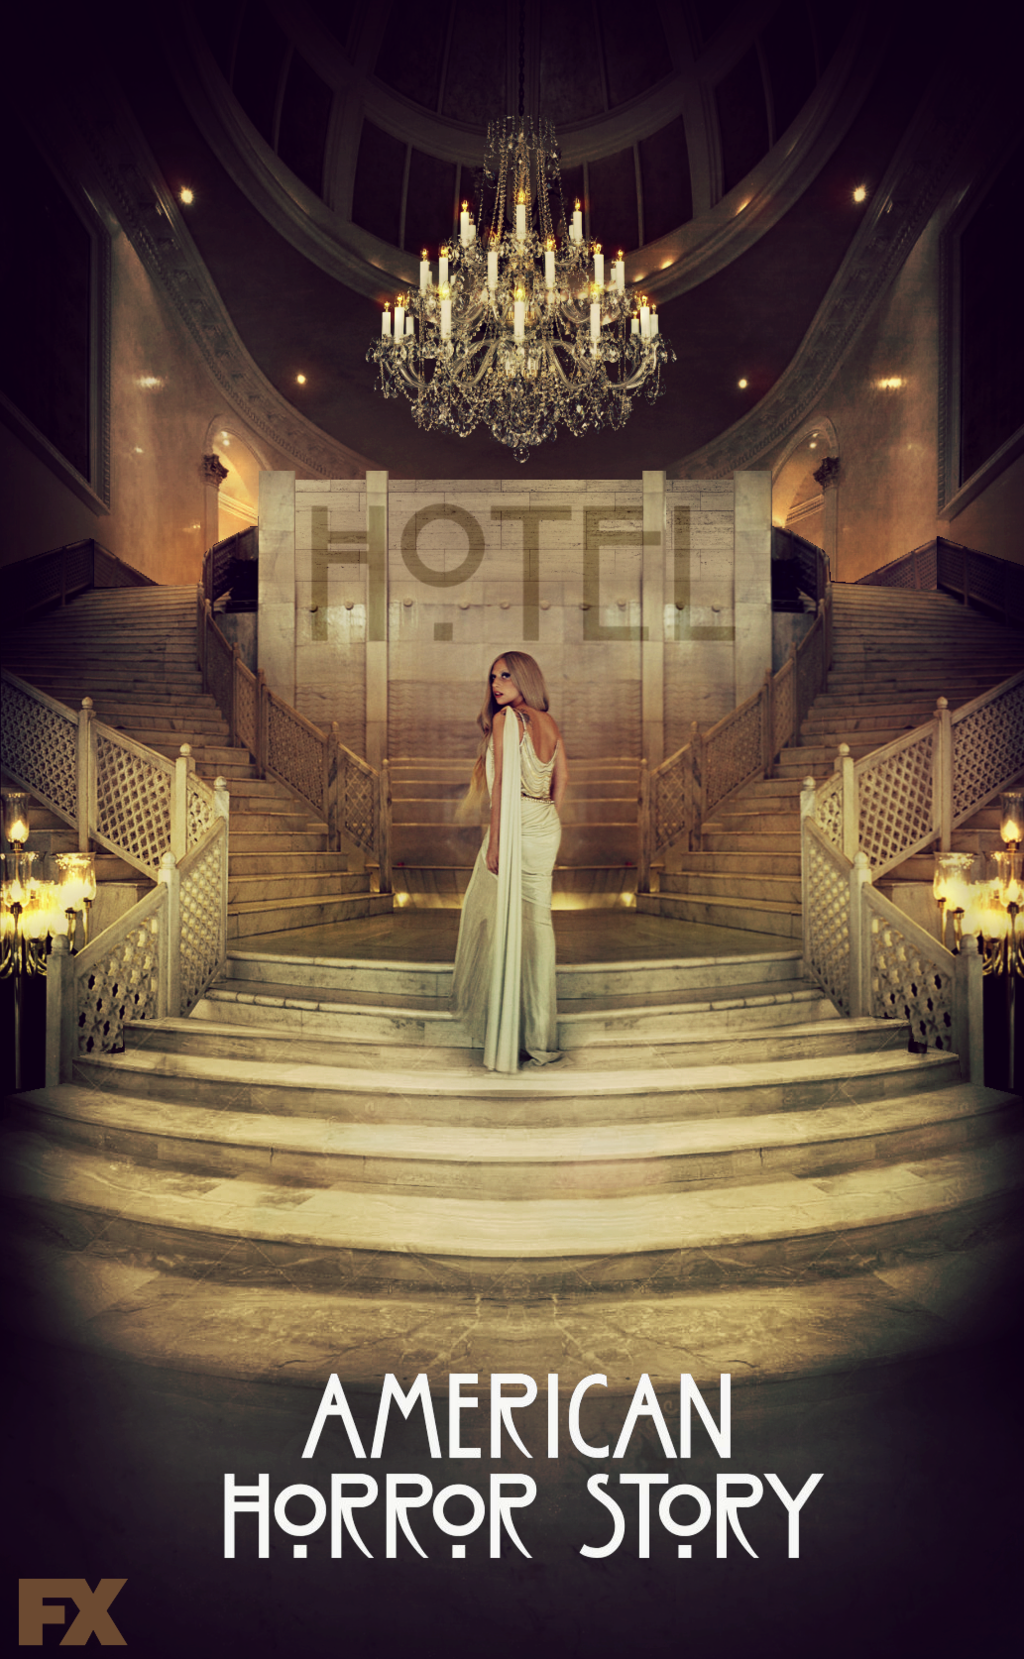 American Horror Story   Hotel Lady Gaga by Panchecco 1024x1659